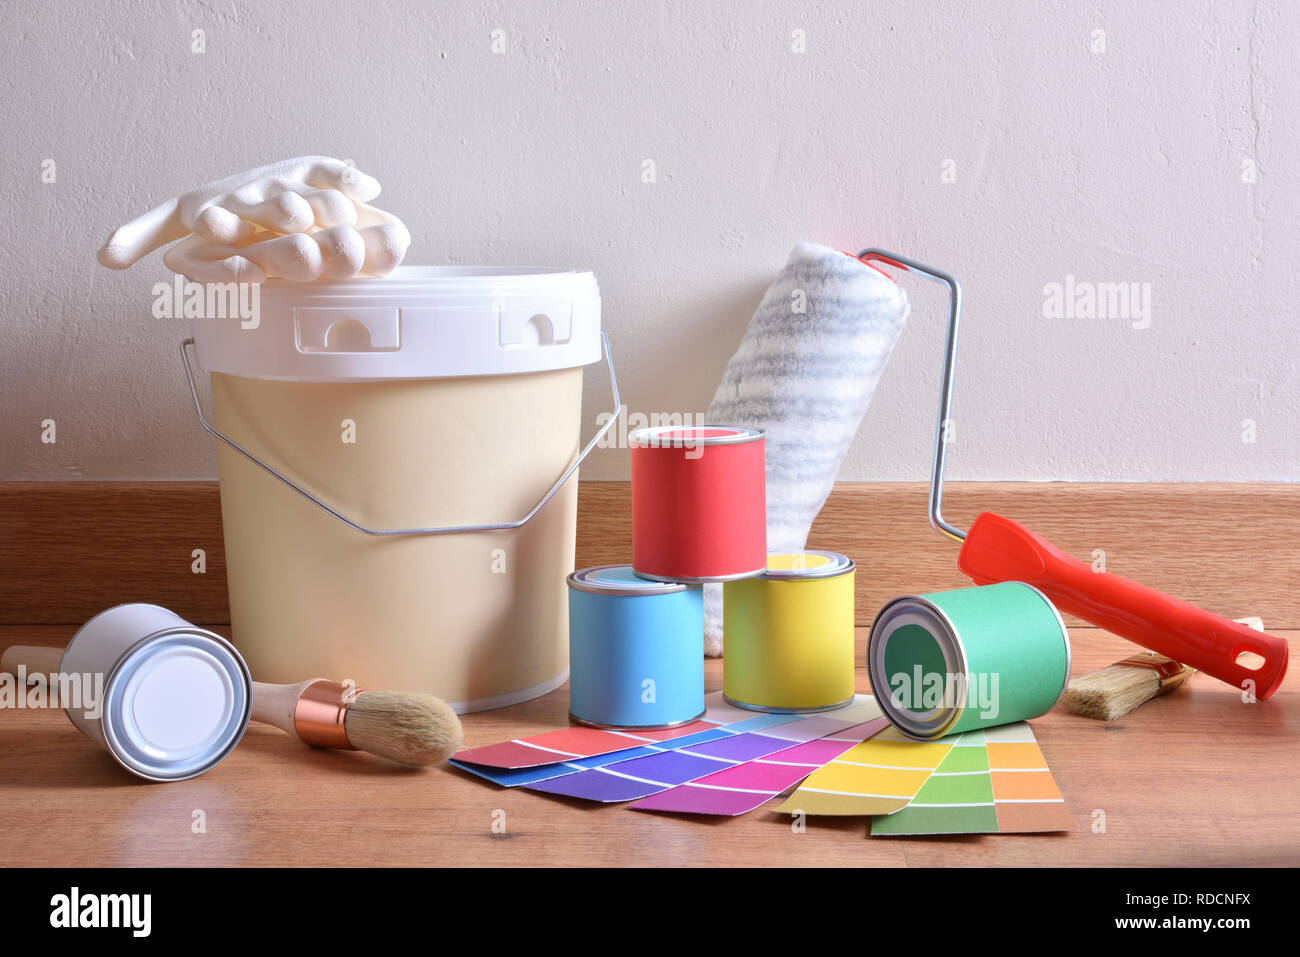 Painting Tools For Home On Parquet With White Wall Background